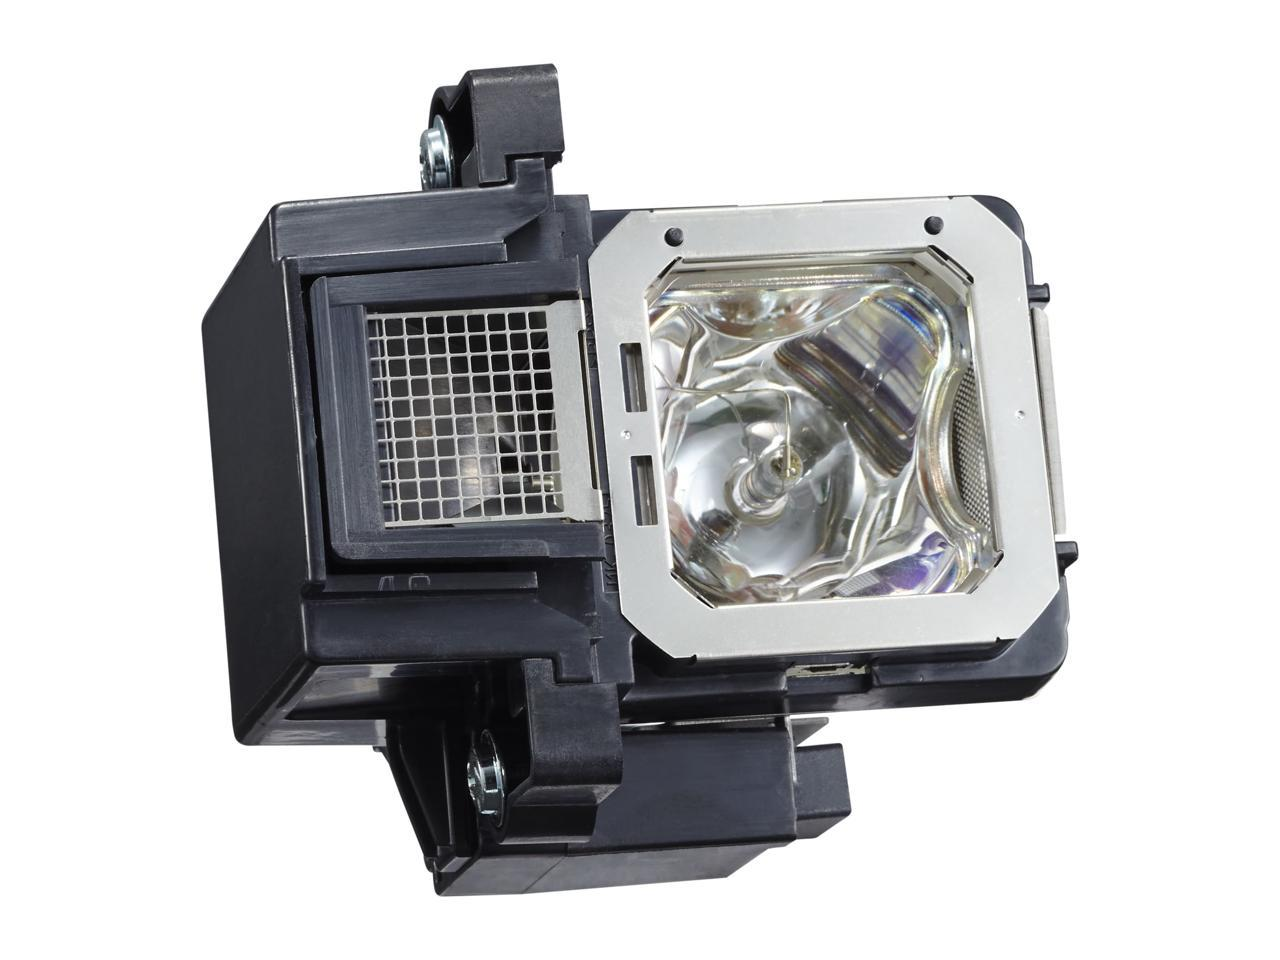 for JVC DLA-RS6710 Projector Lamp Replacement Assembly with Genuine Original OEM Ushio NSH Bulb Inside IET Lamps